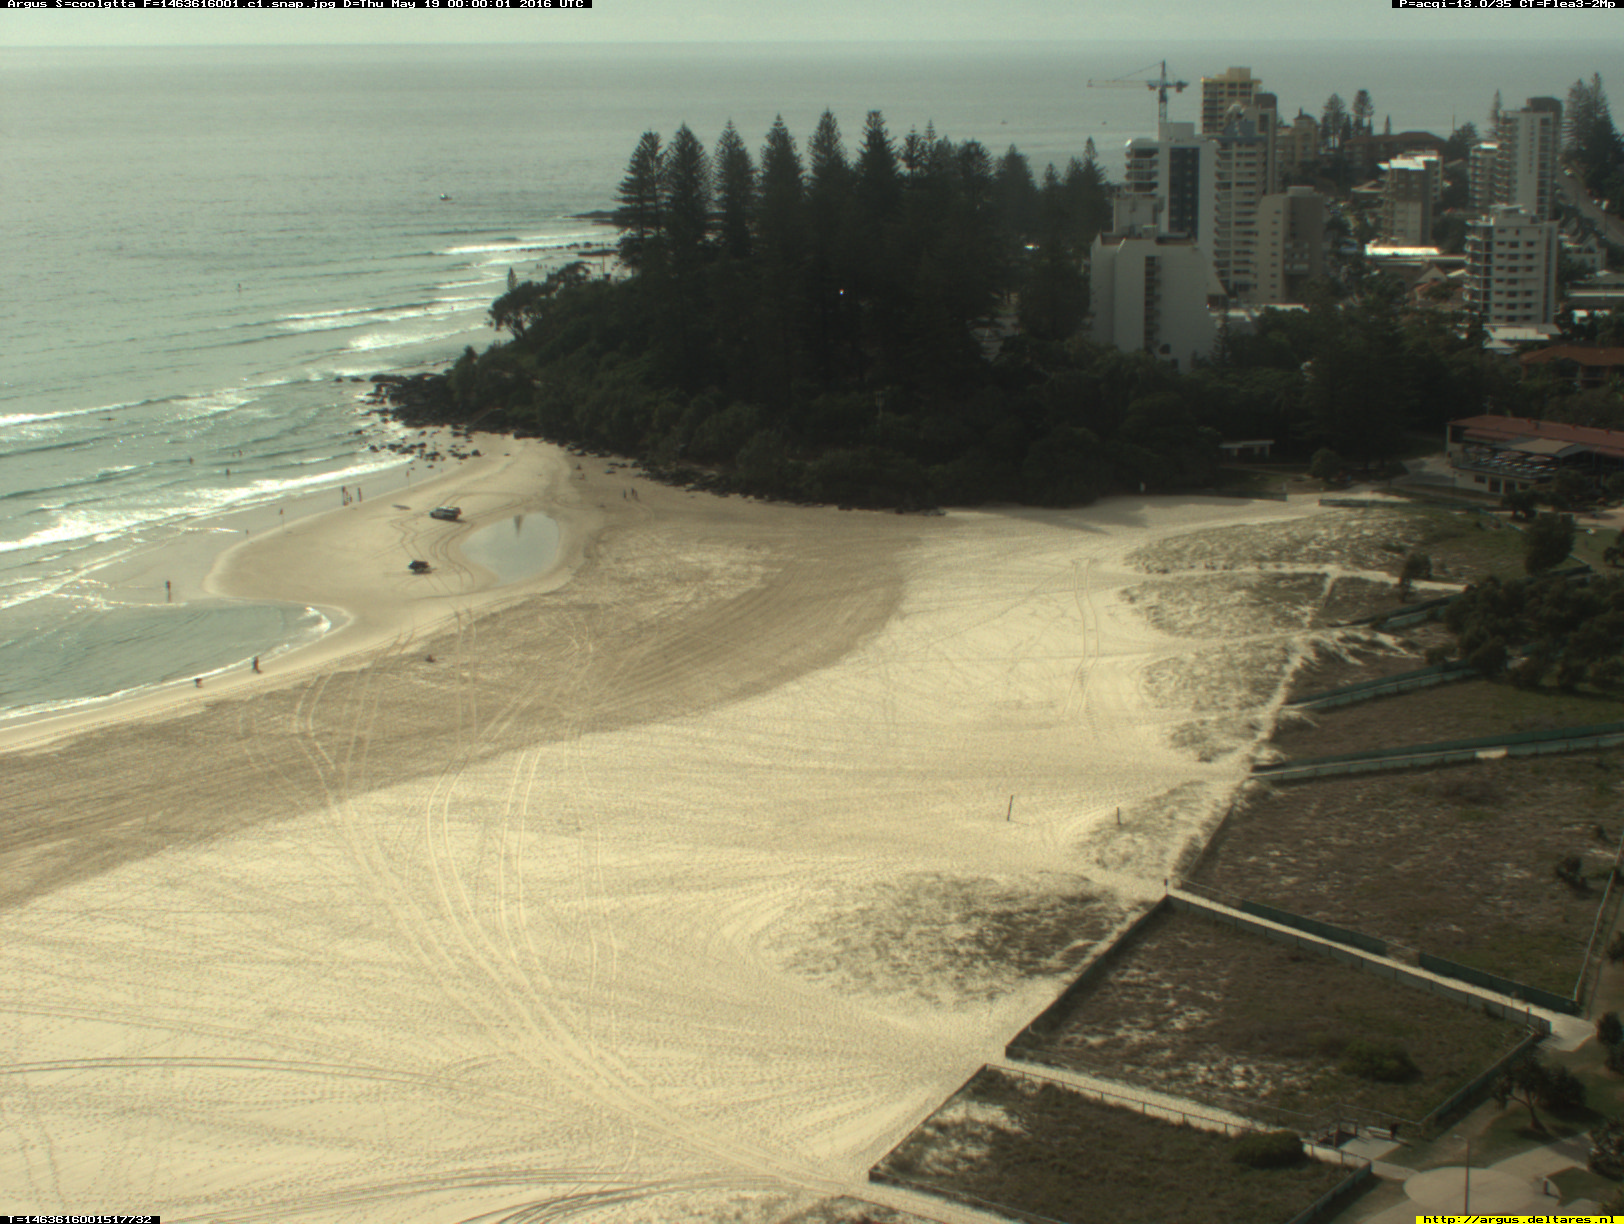 Greenmount webcam - Coolangatta - Greenmount 1 webcam, Queensland, Gold Coast